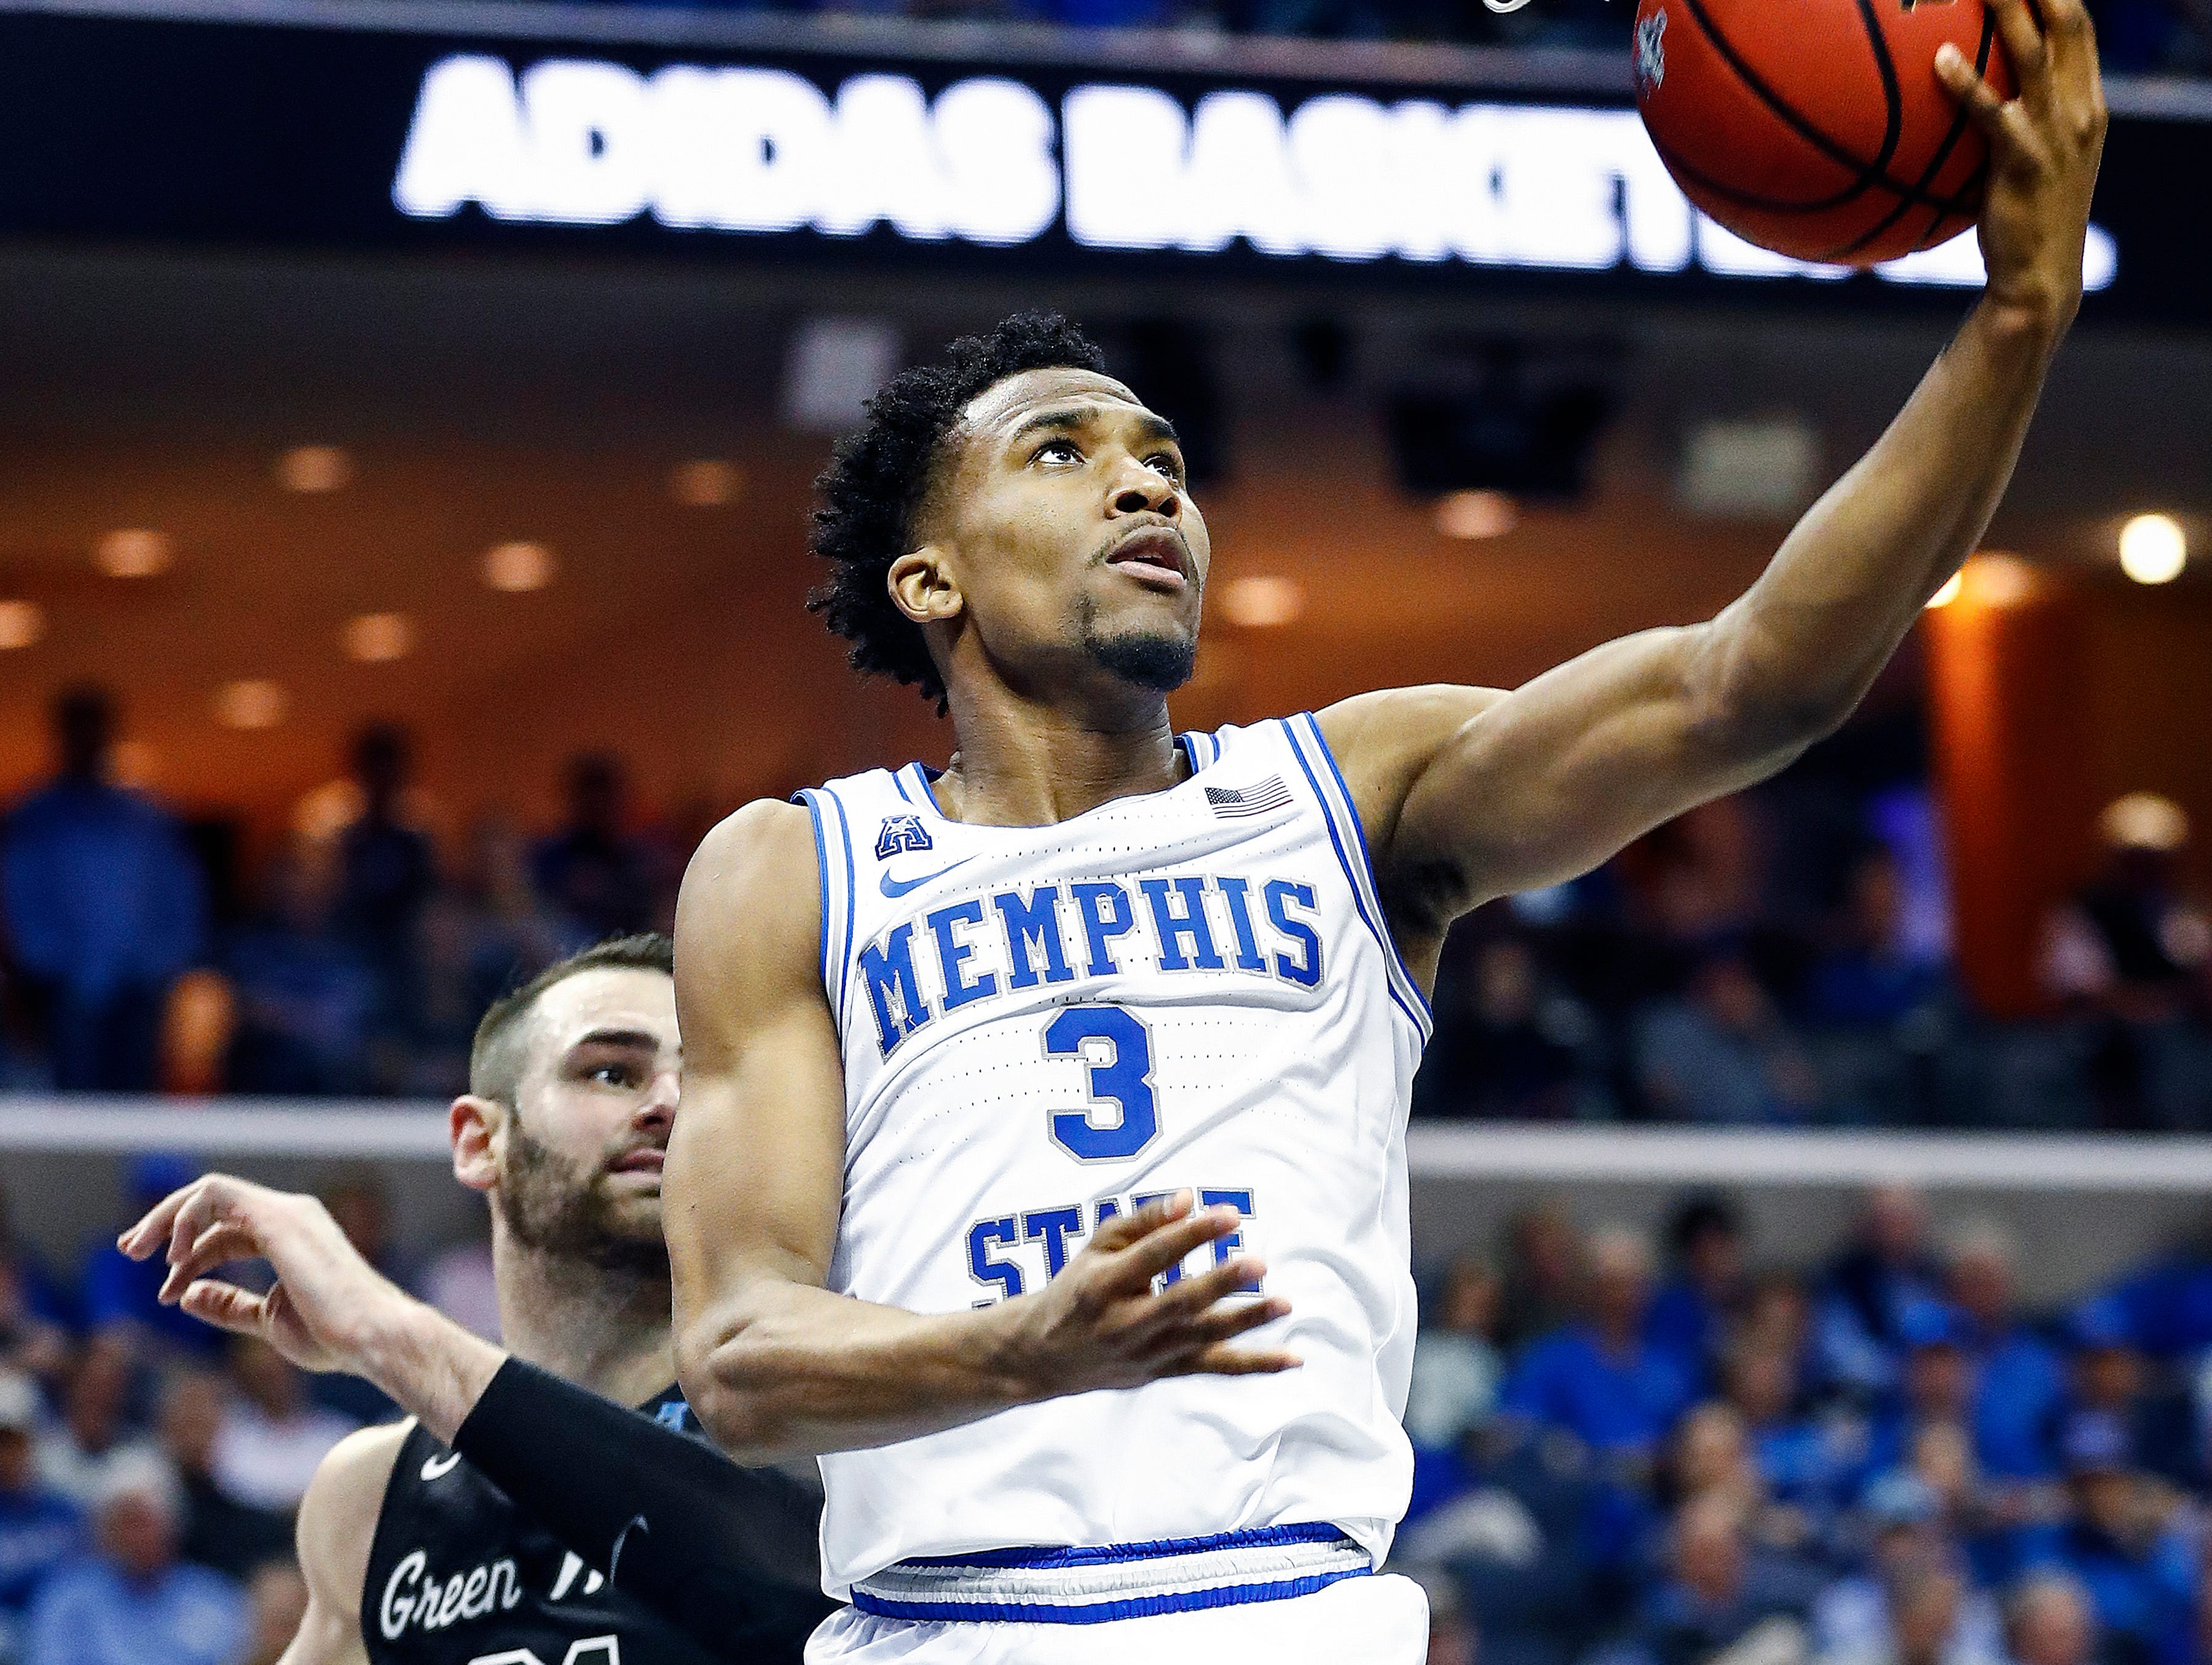 Memphis guard Jeremiah Martin (left) drives to the baked against the Tulane defense during action of their first round AAC Tournament game at the  FedExForum, Thursday, March 14, 2019.